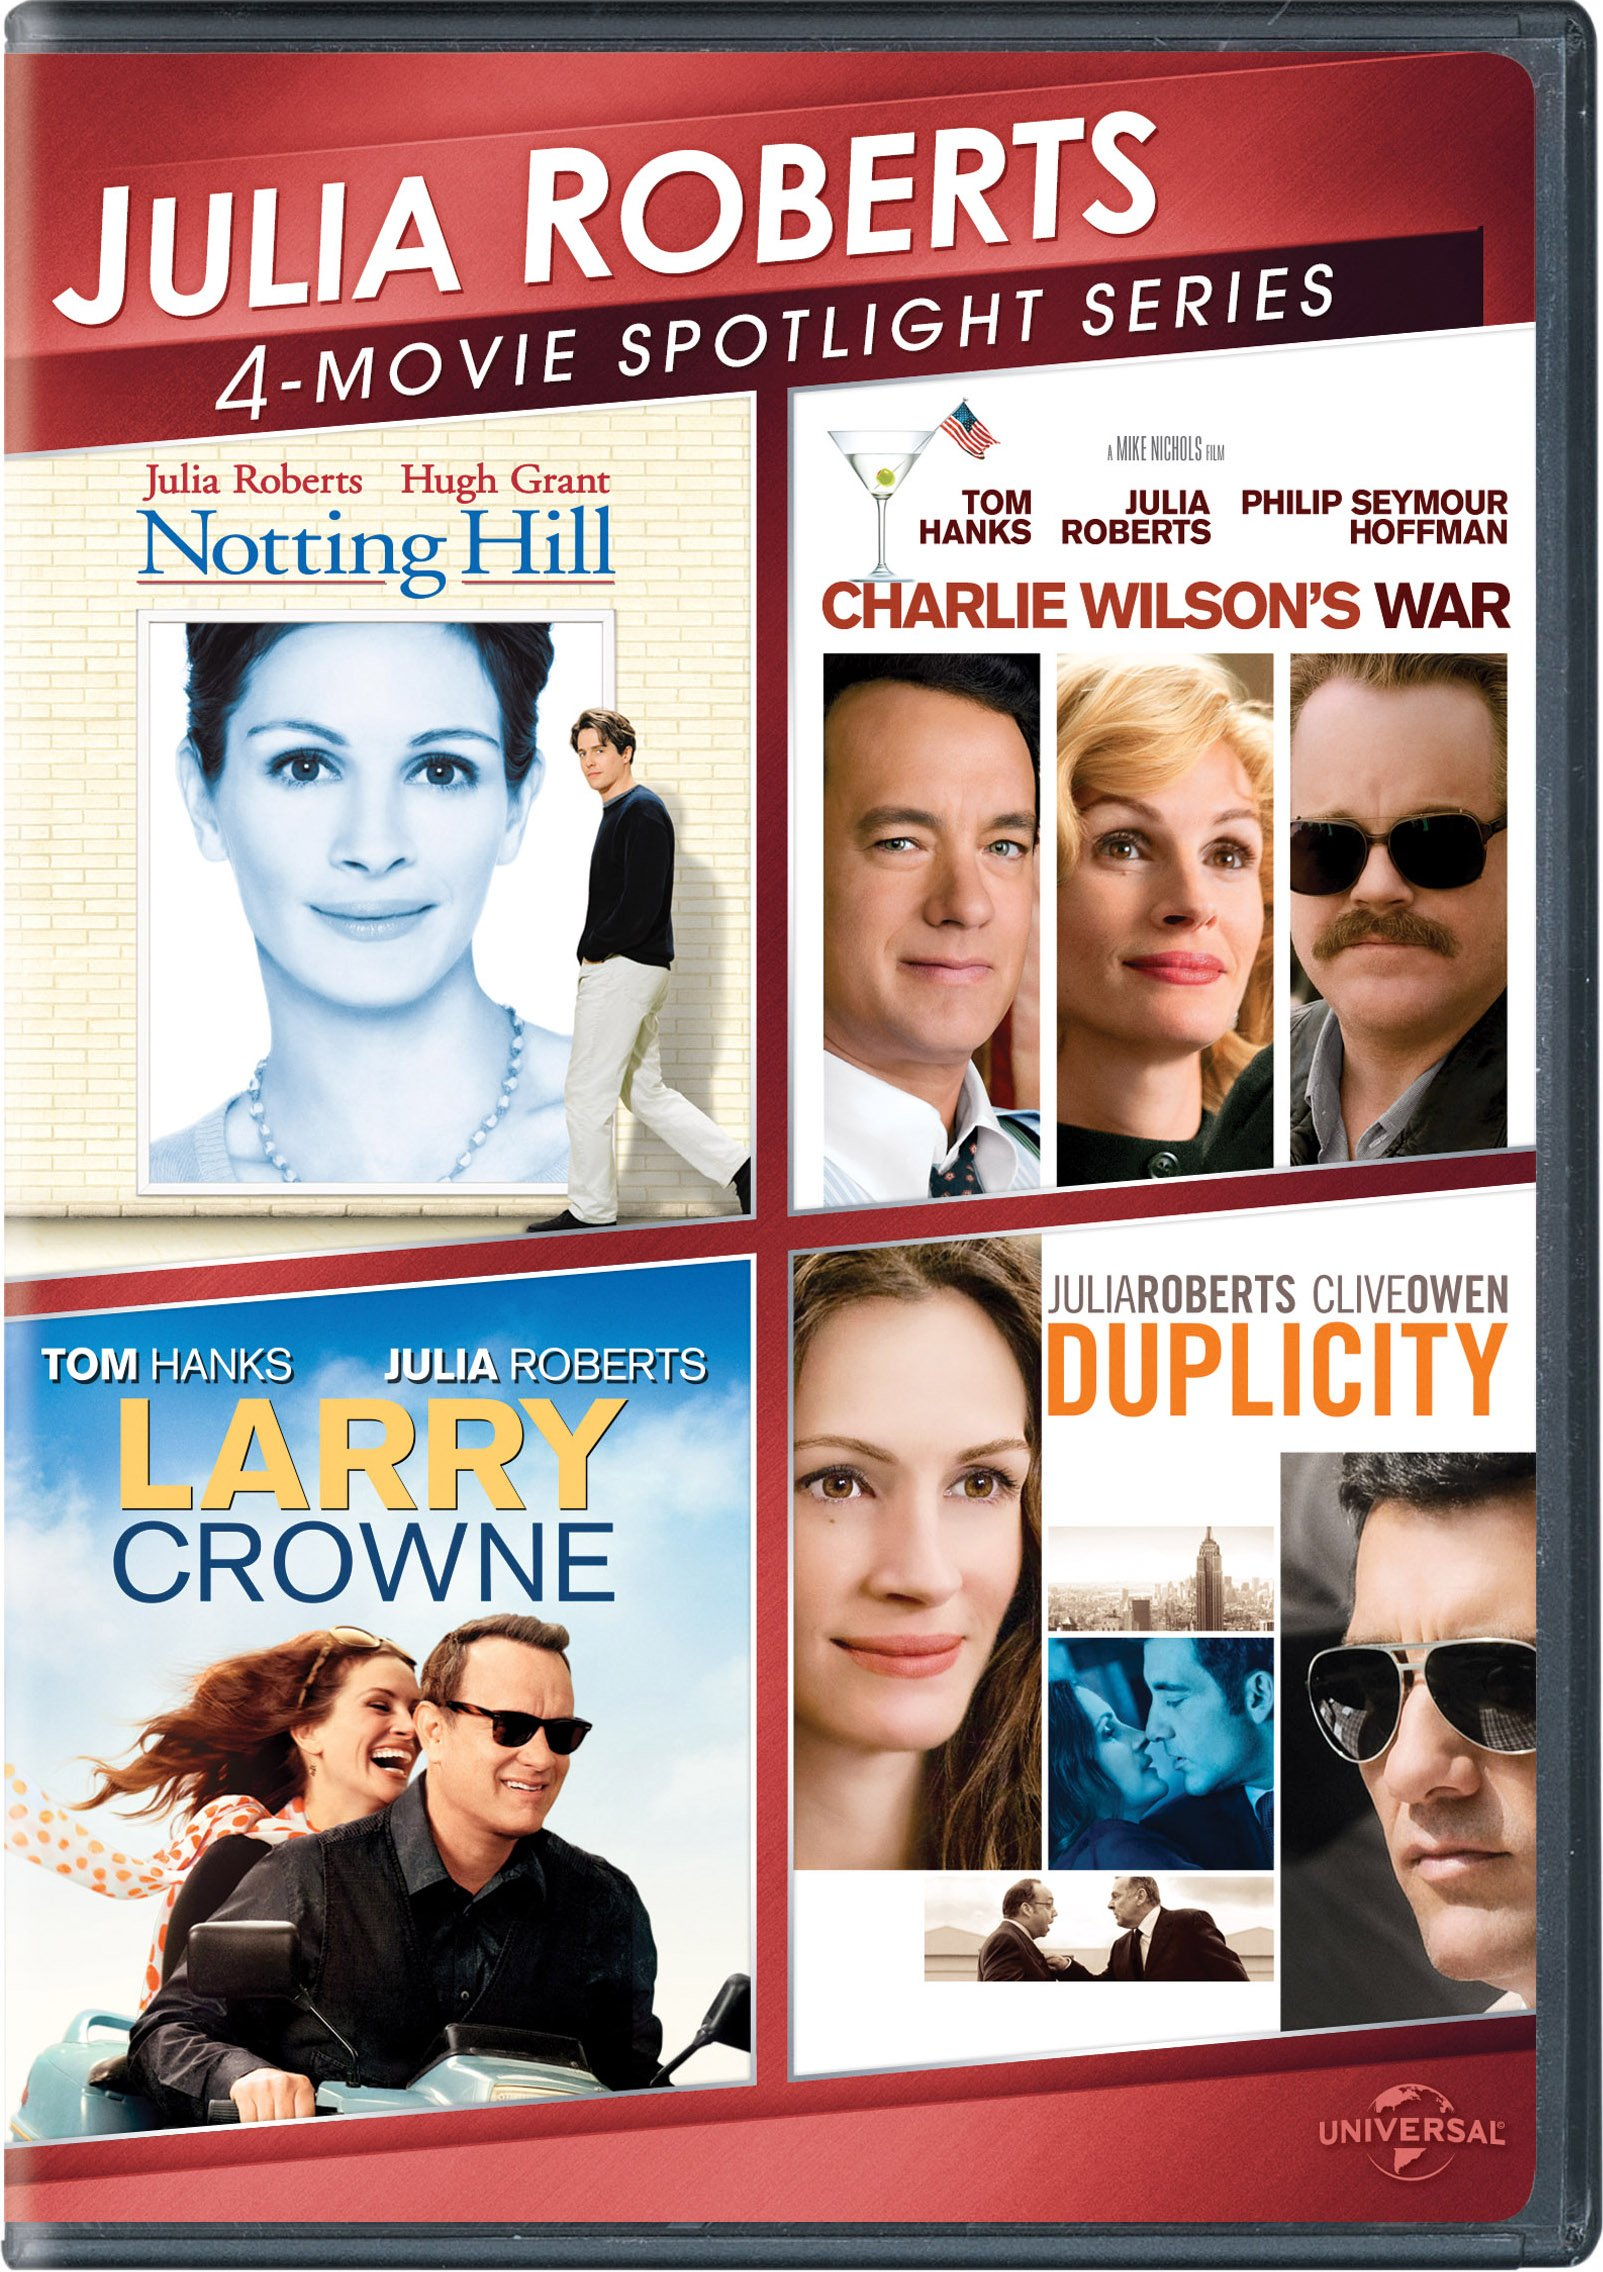 DVD : Julia Roberts 4-Movie Spotlight Series (Snap Case, 3 Pack, 3 Disc)